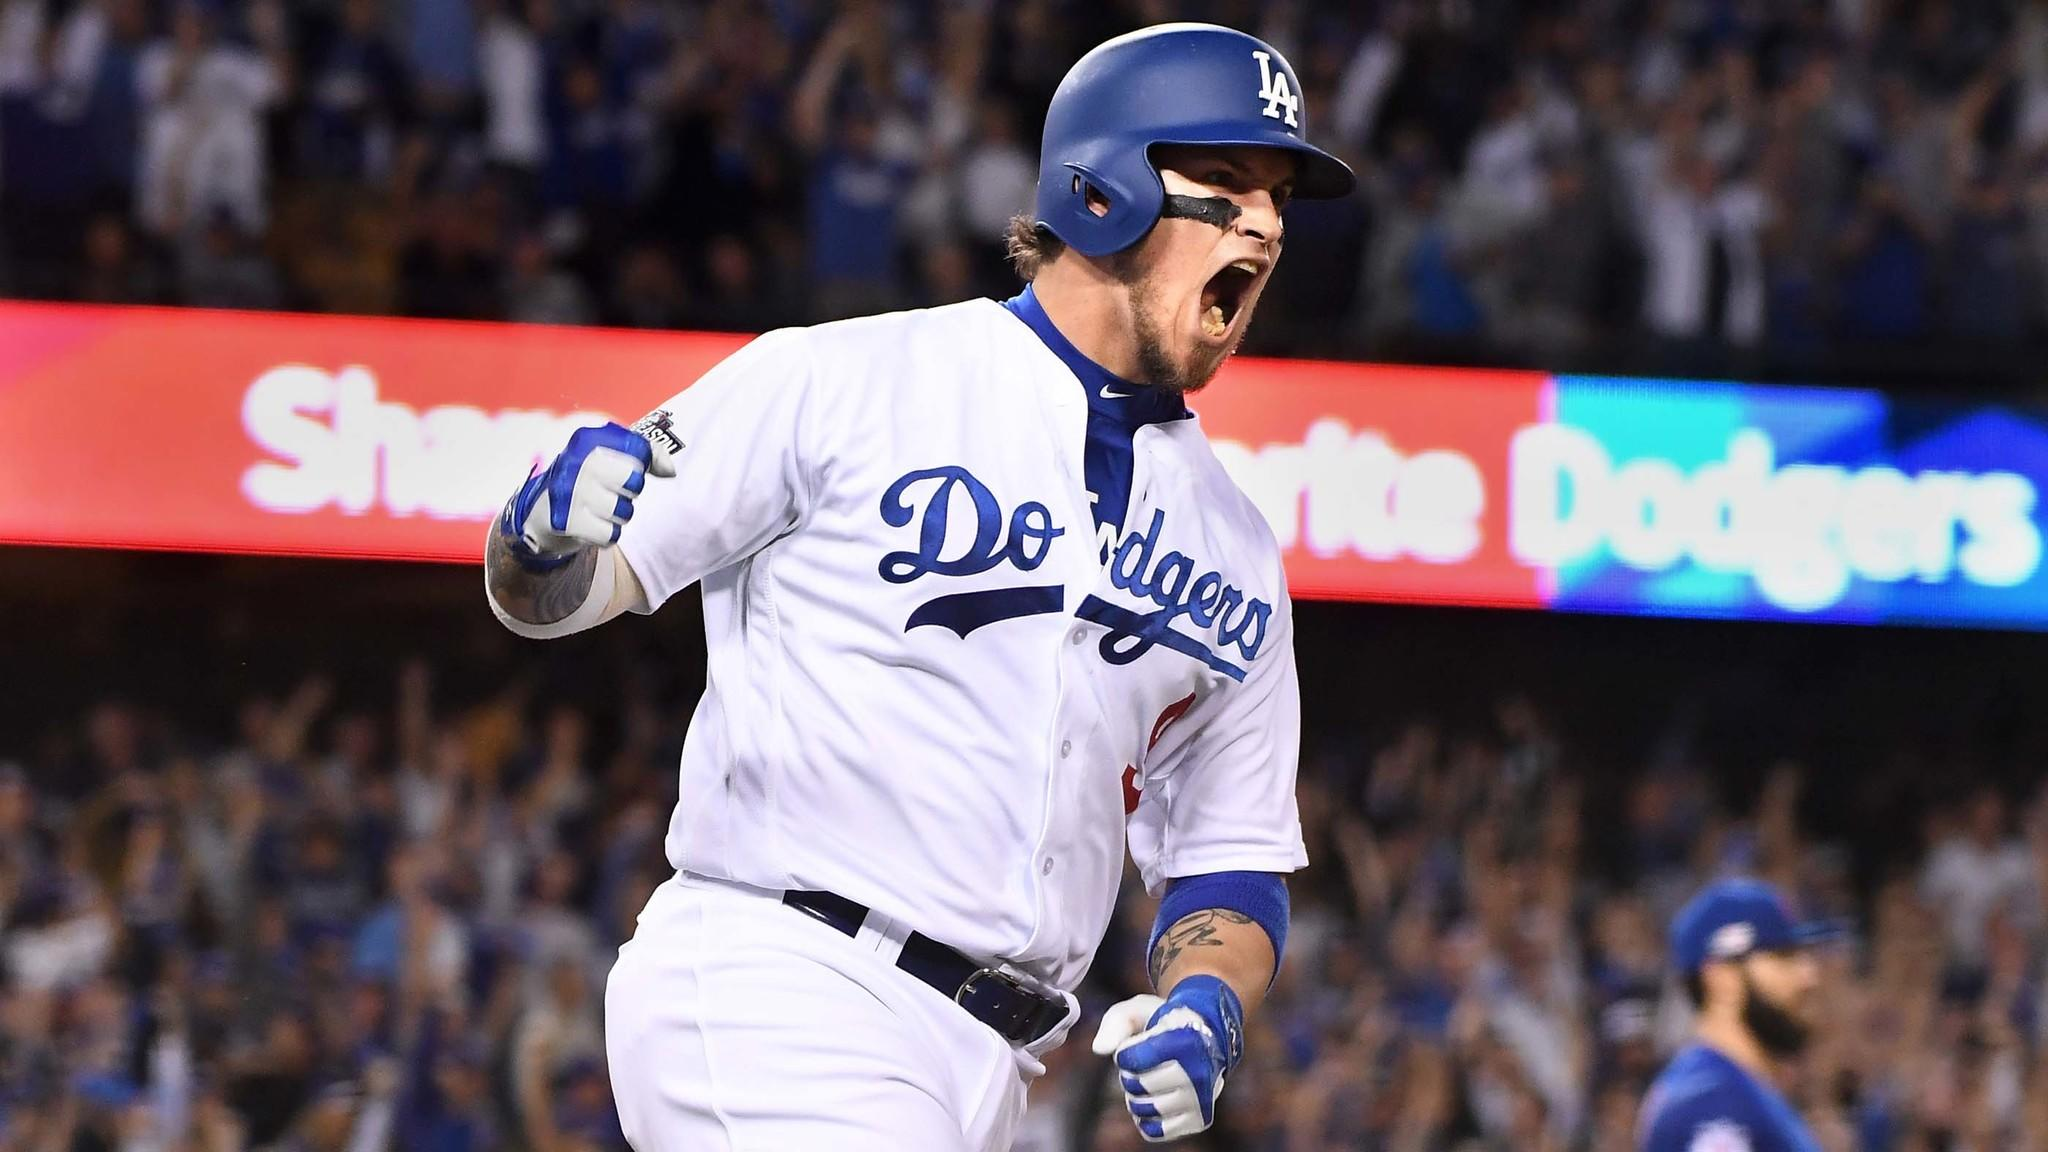 Yasmandi Grandal celebrates after hitting a two-run home run. (Wally Skalij / Los Angeles Times)